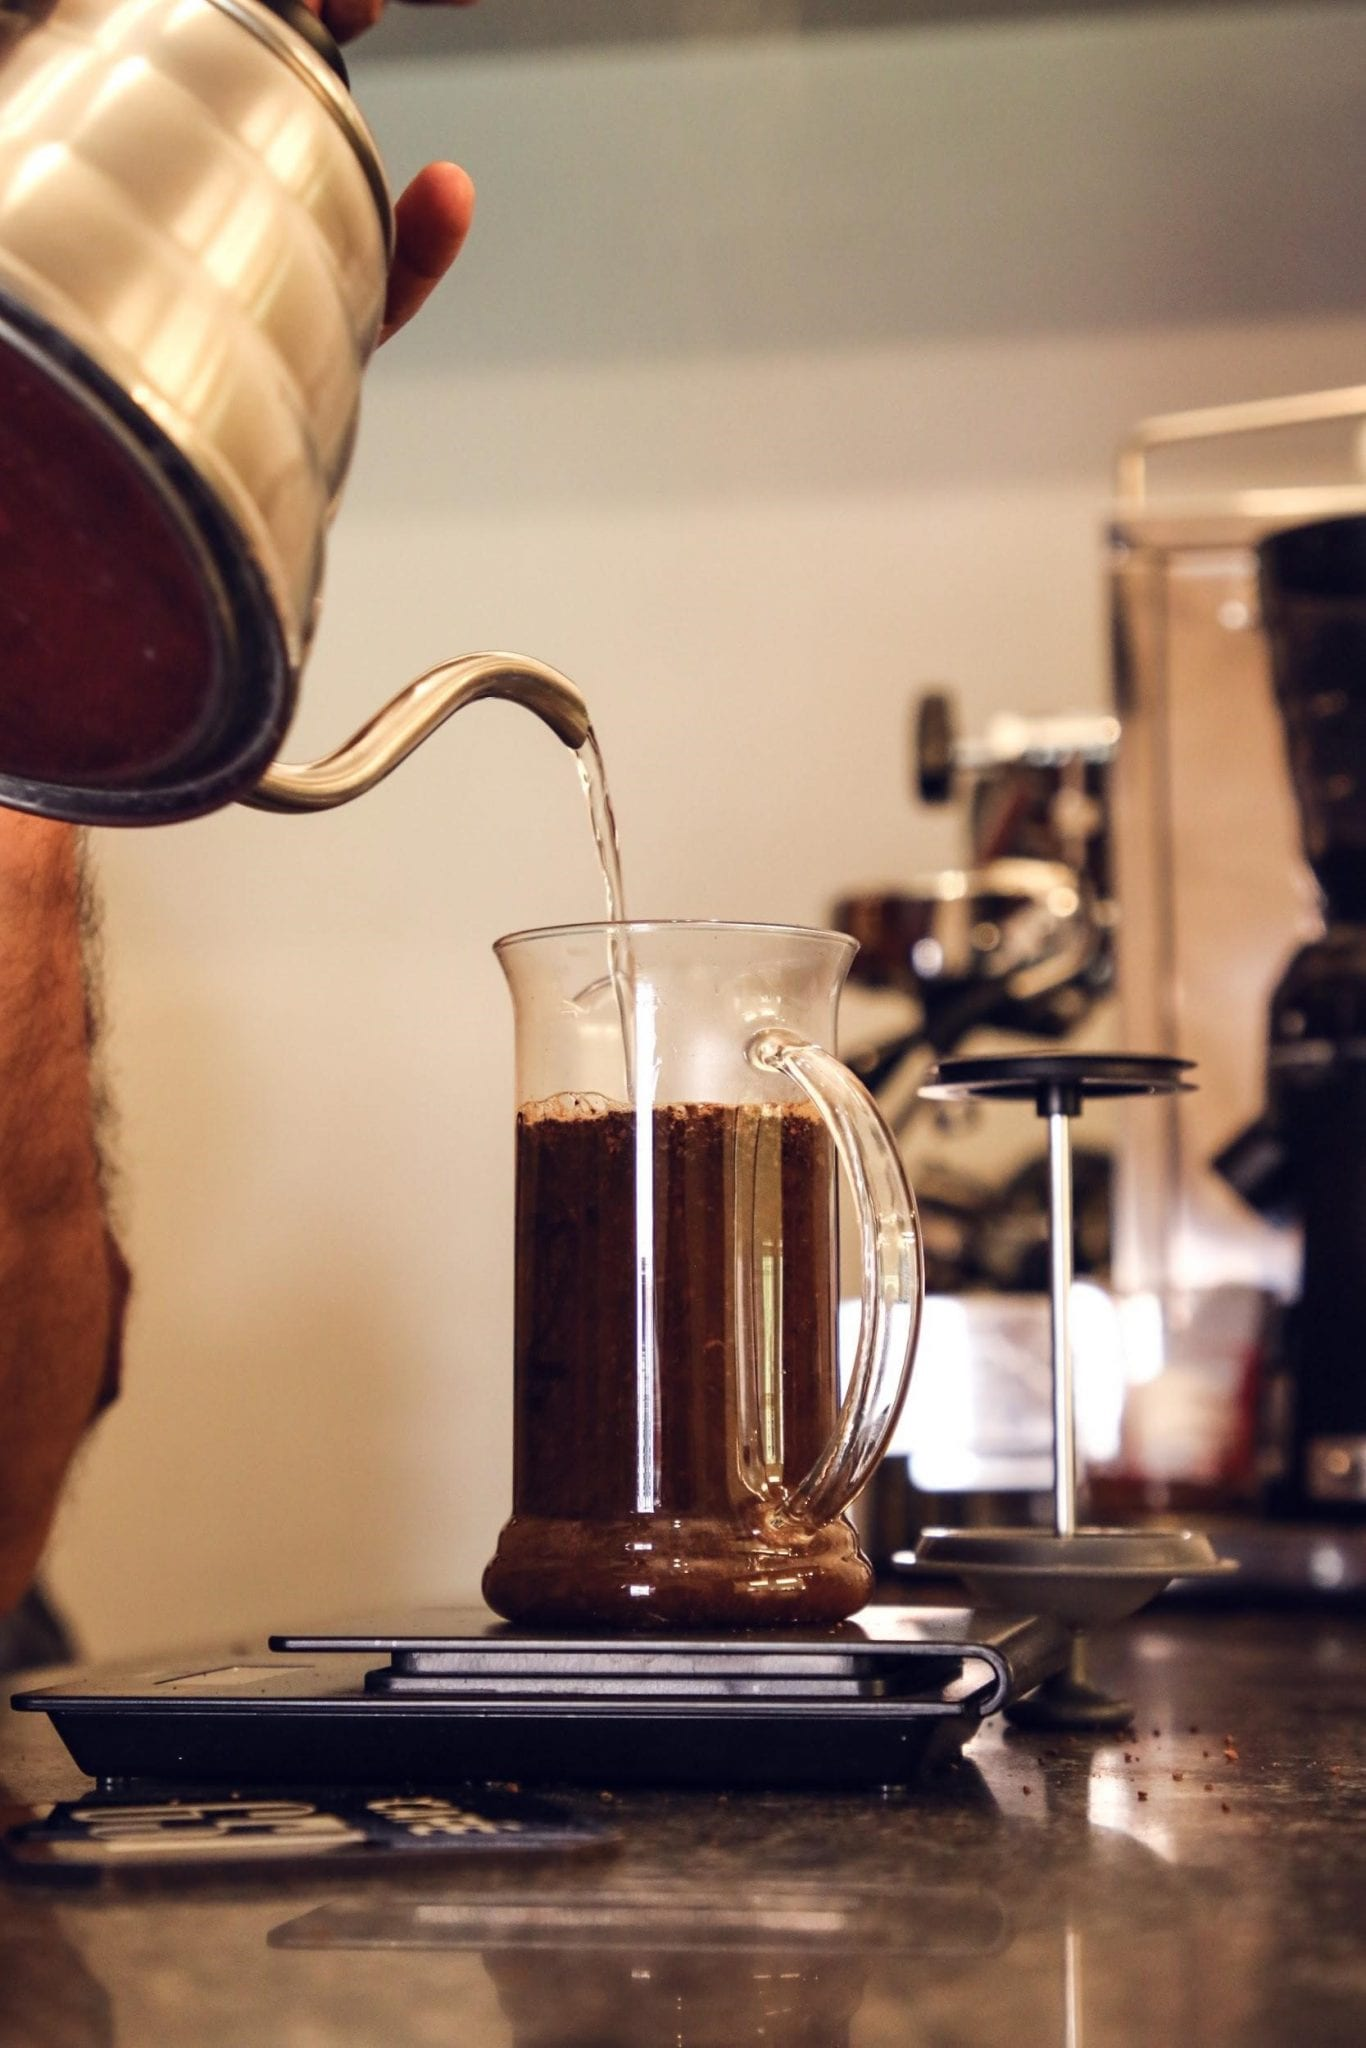 a barista brews a coffee in a french press